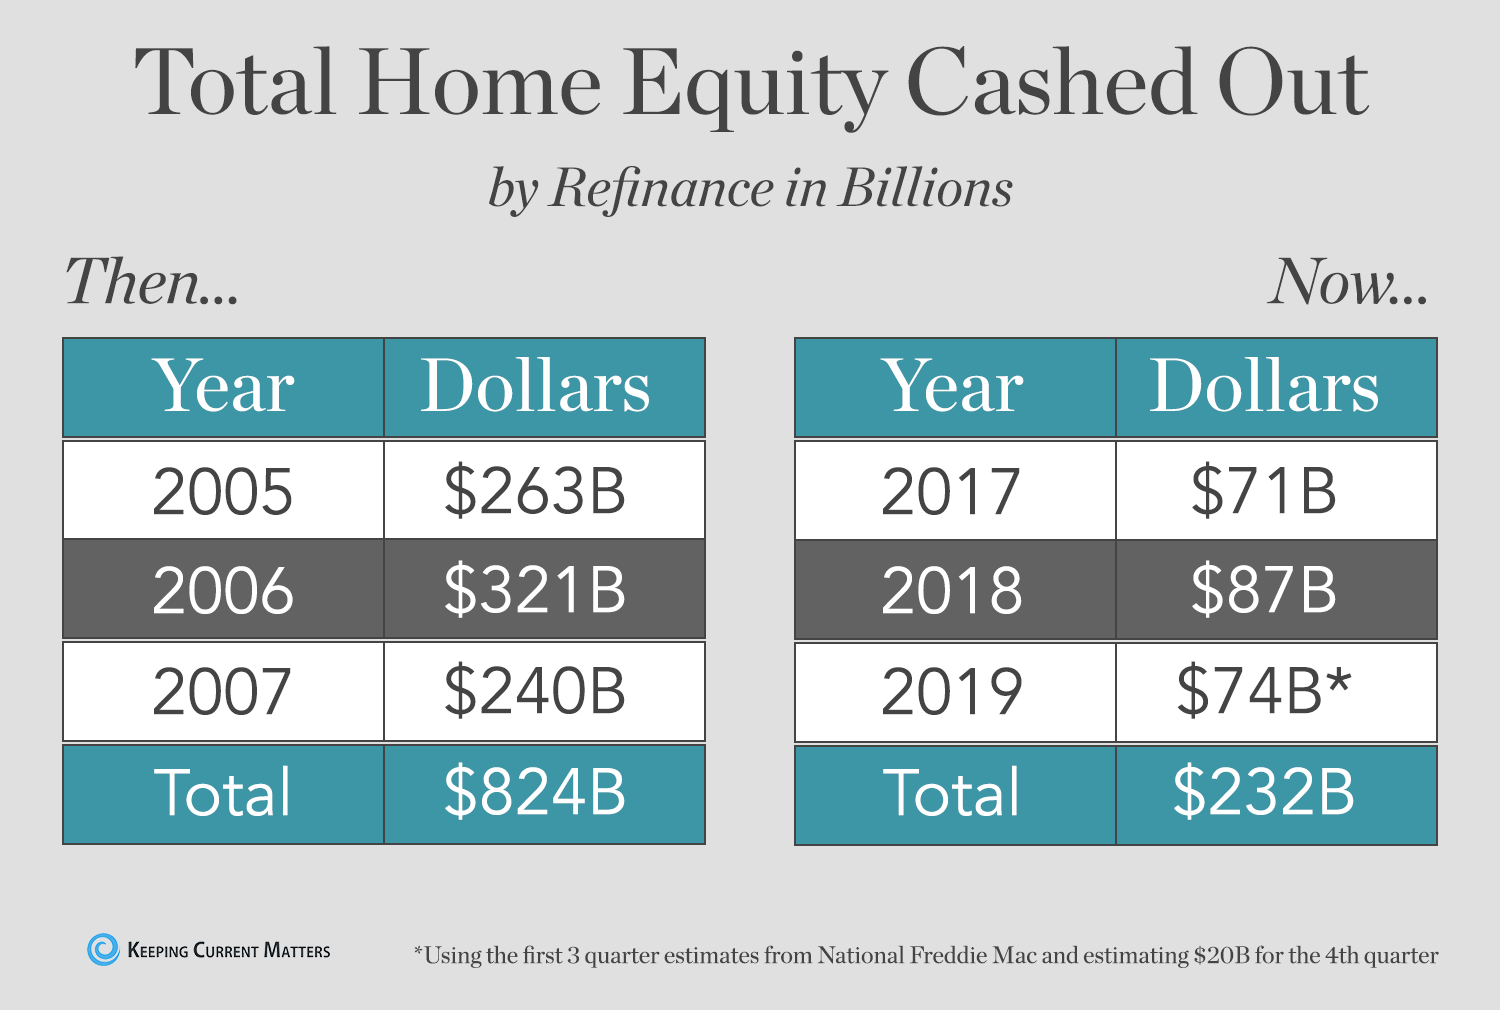 Total Home Equity Cashed Out